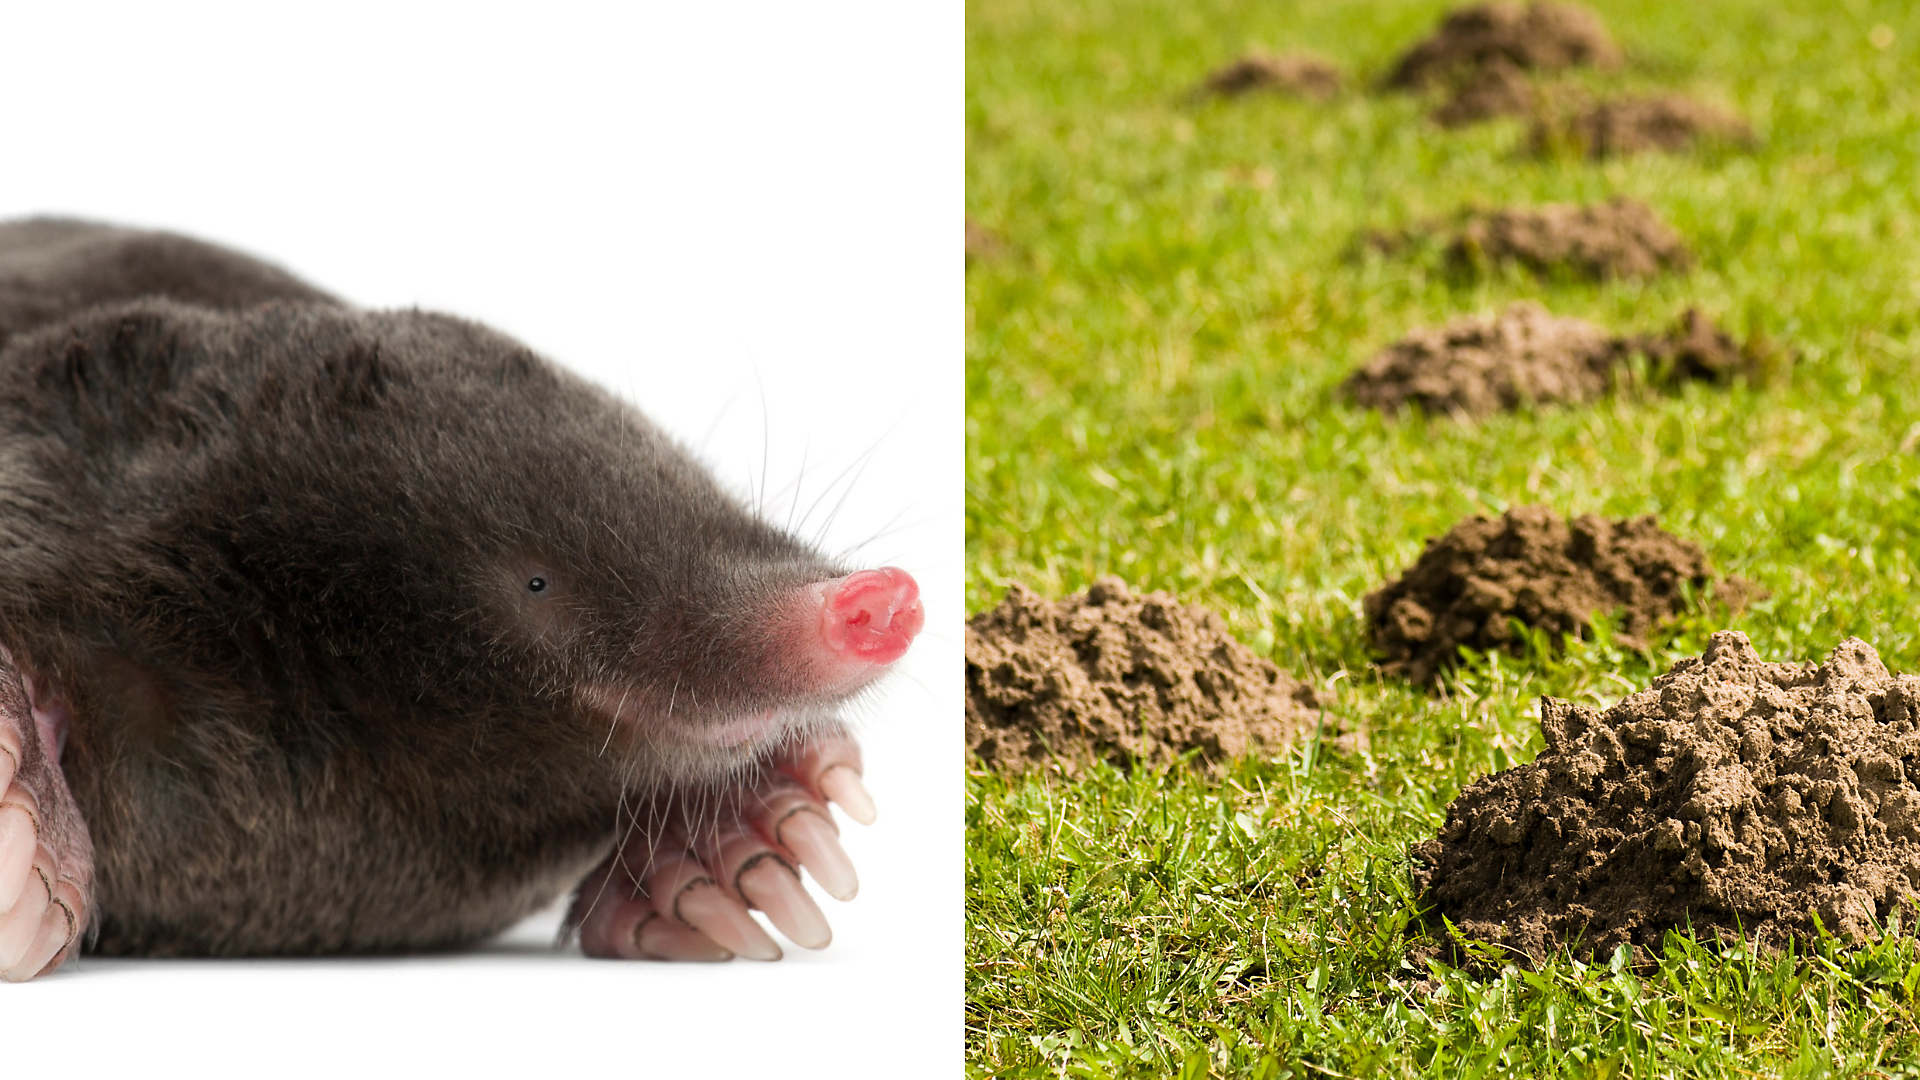 Moles and mole damage